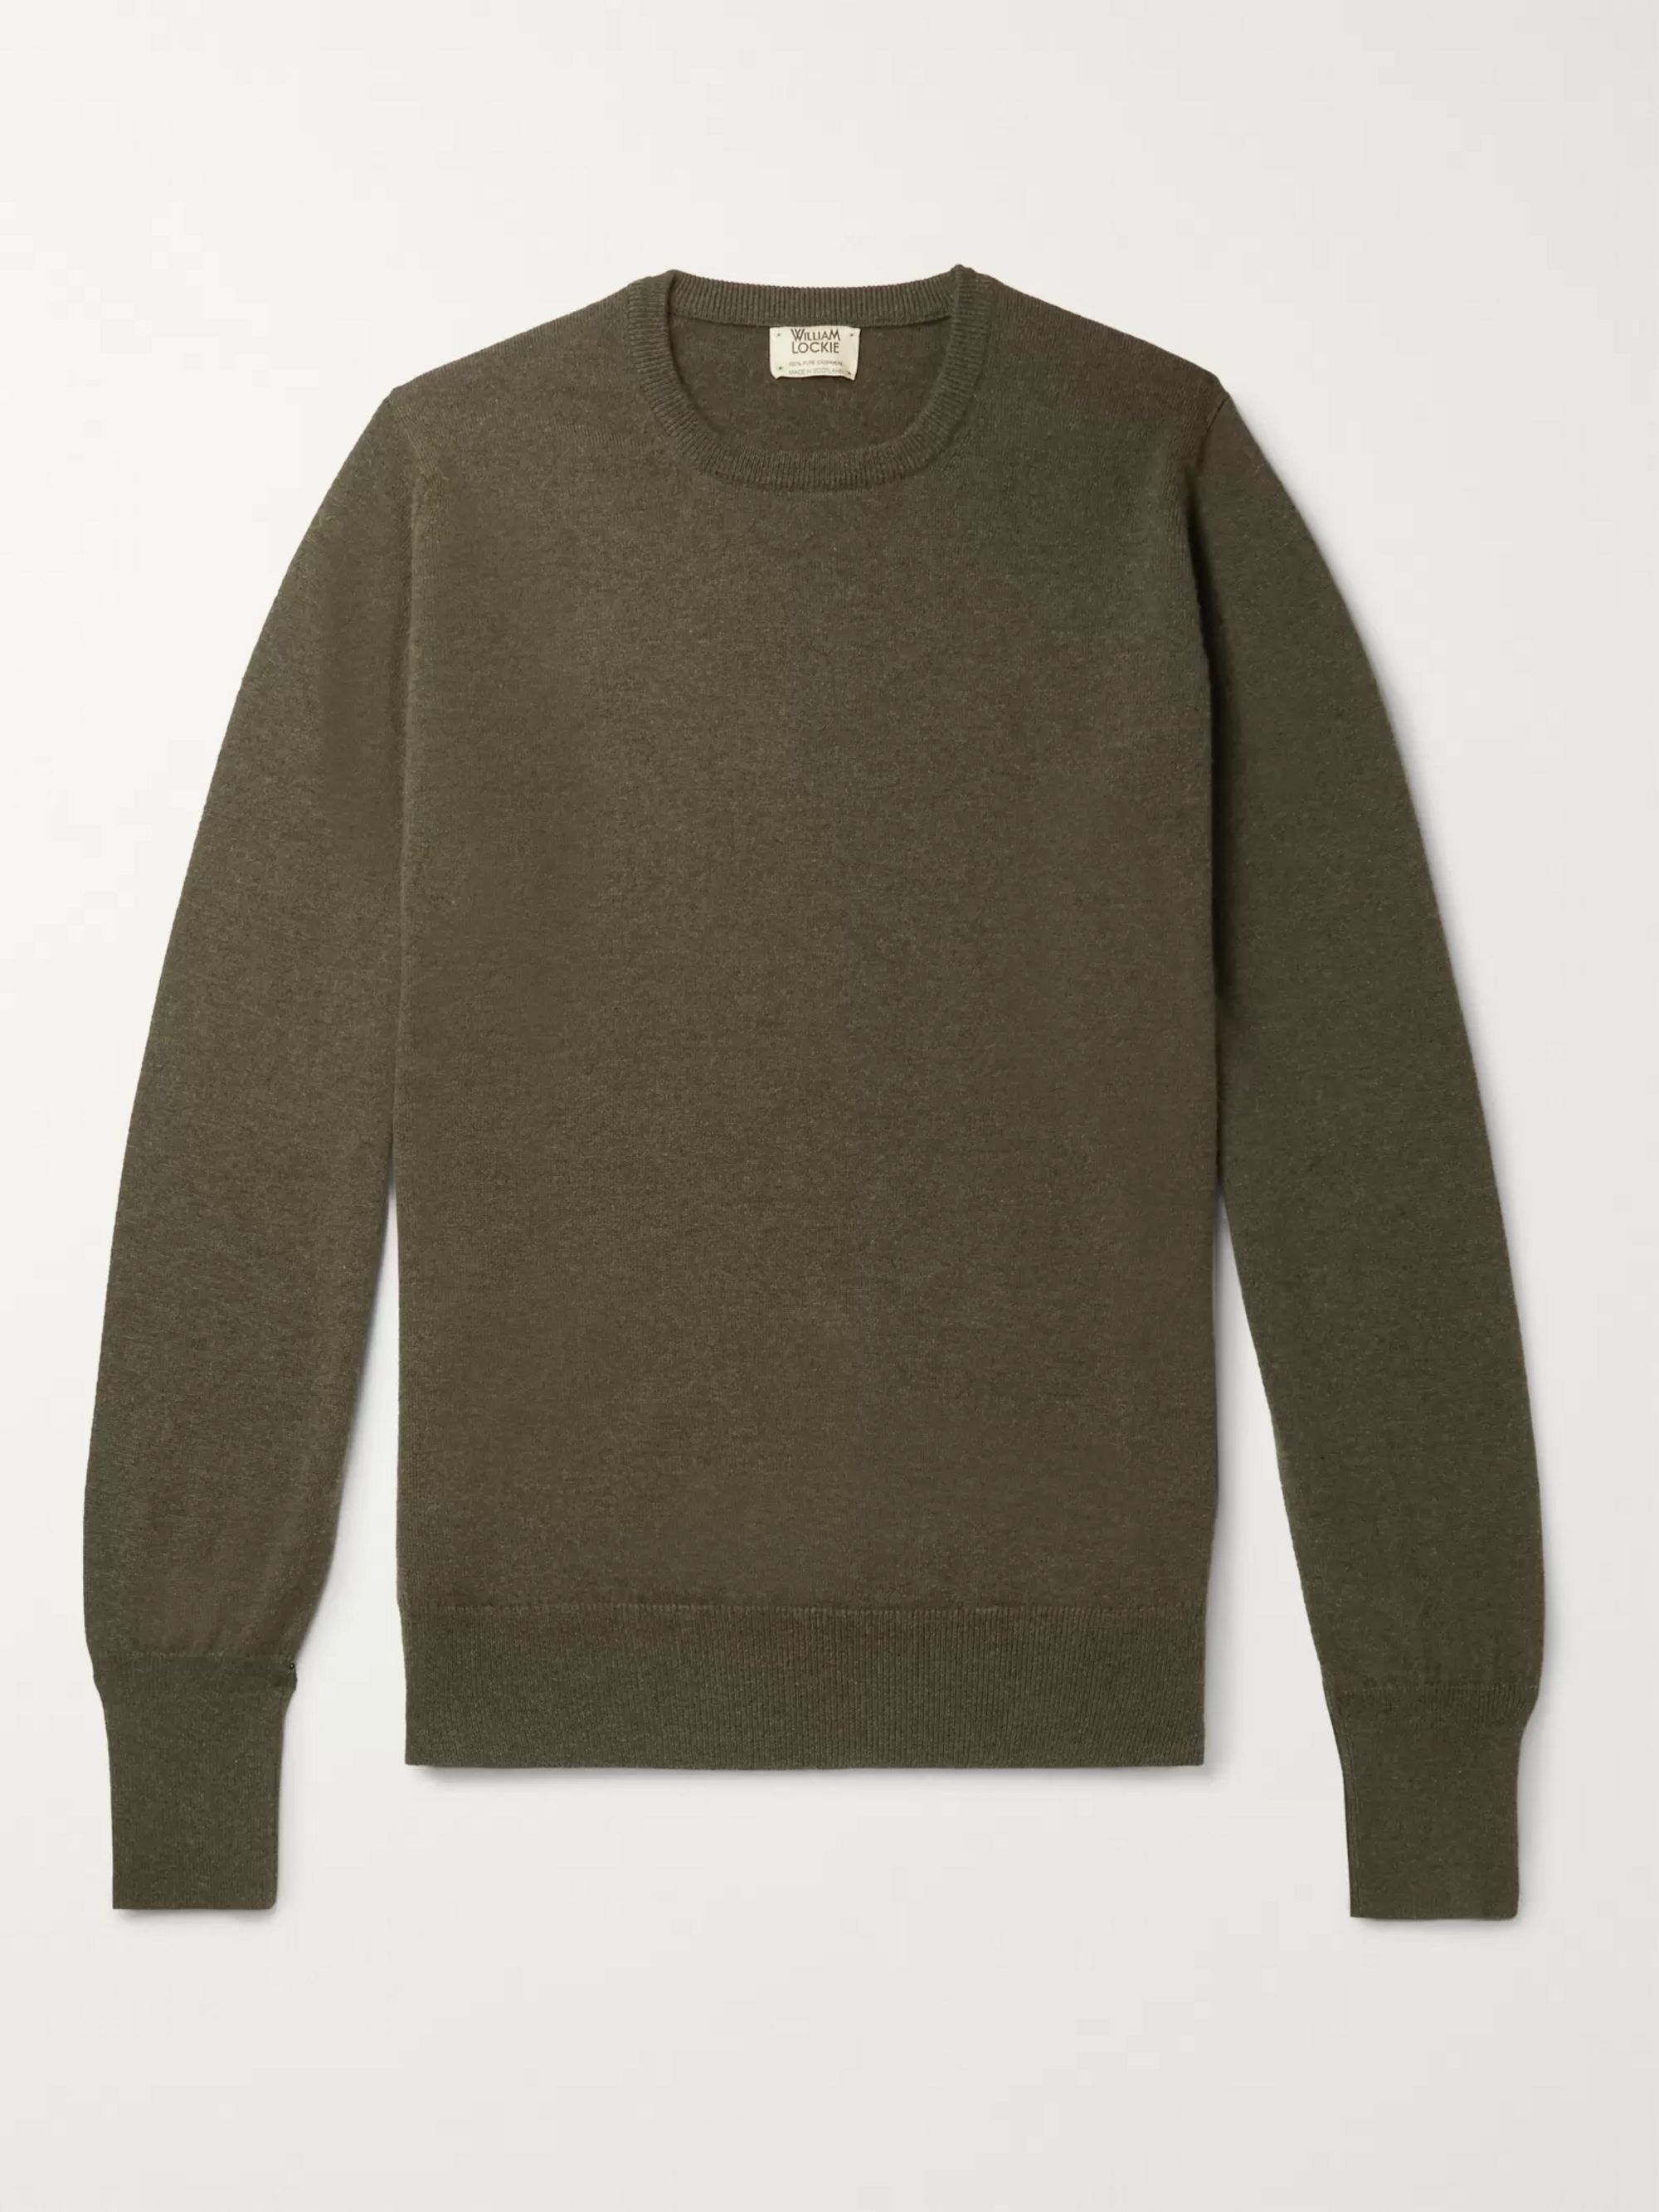 William Lockie Slim-Fit Mélange Cashmere Sweater